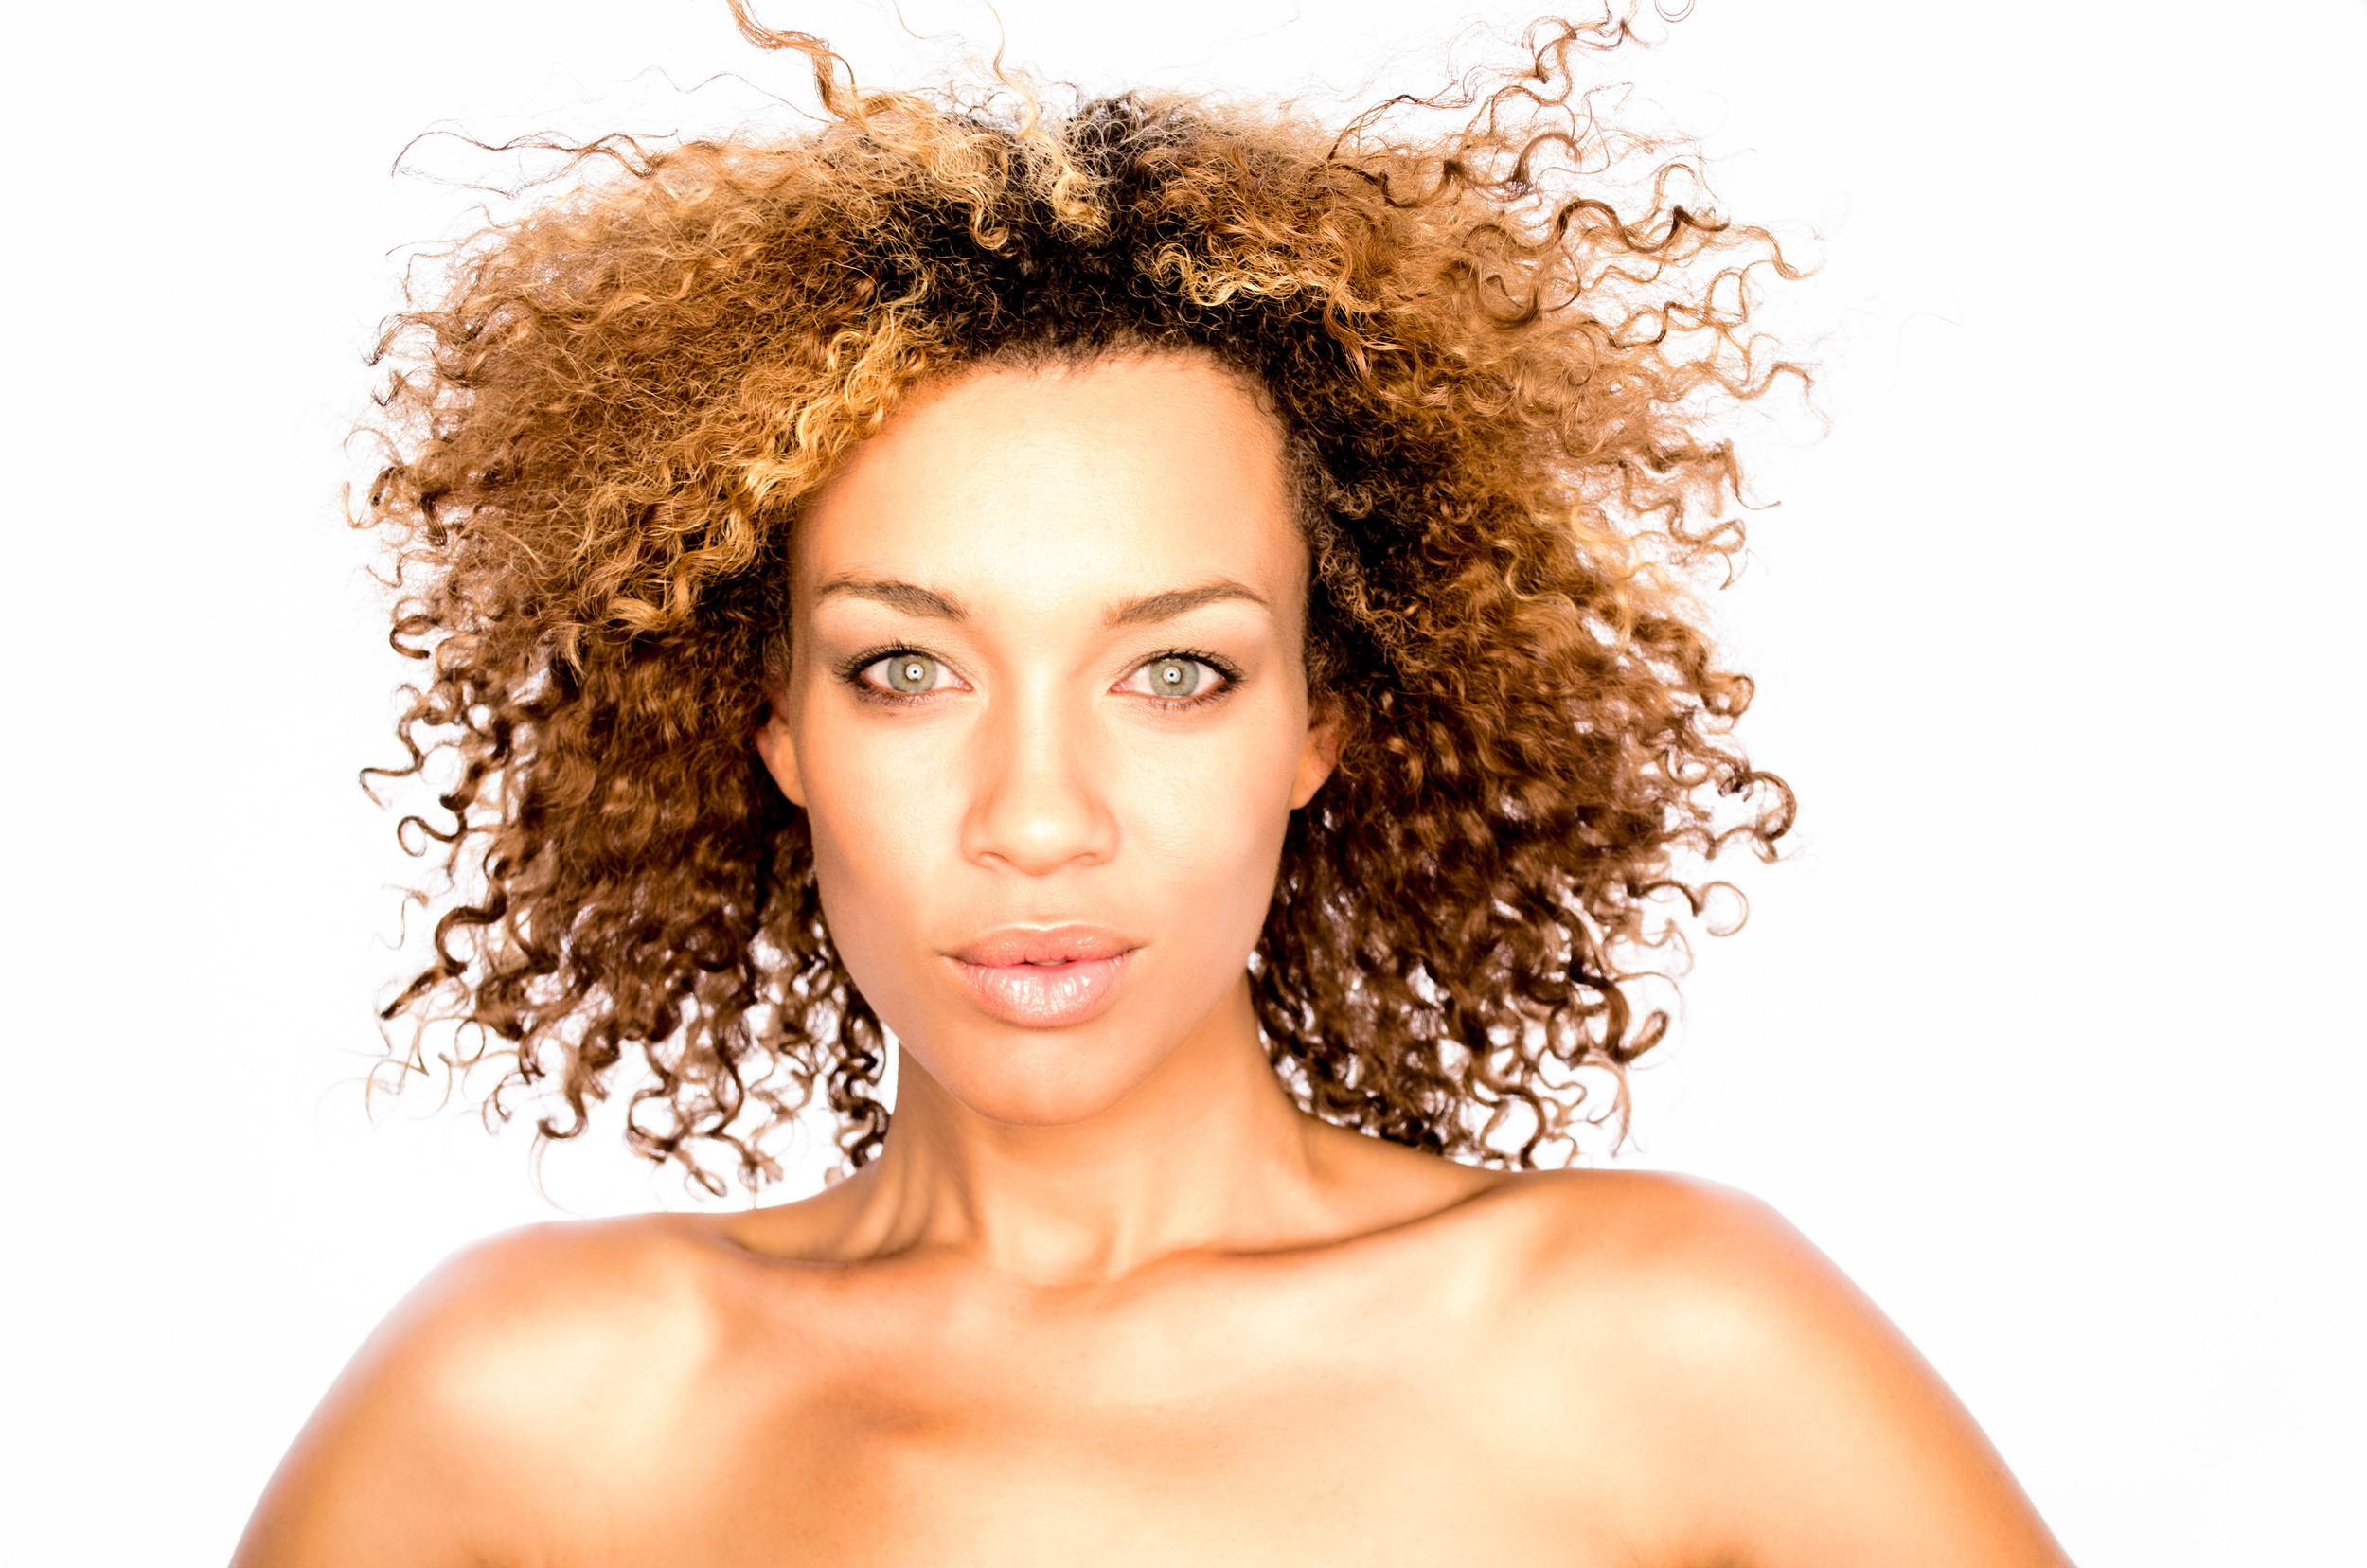 The Big Natural Hair Project with Chantel Jiroch